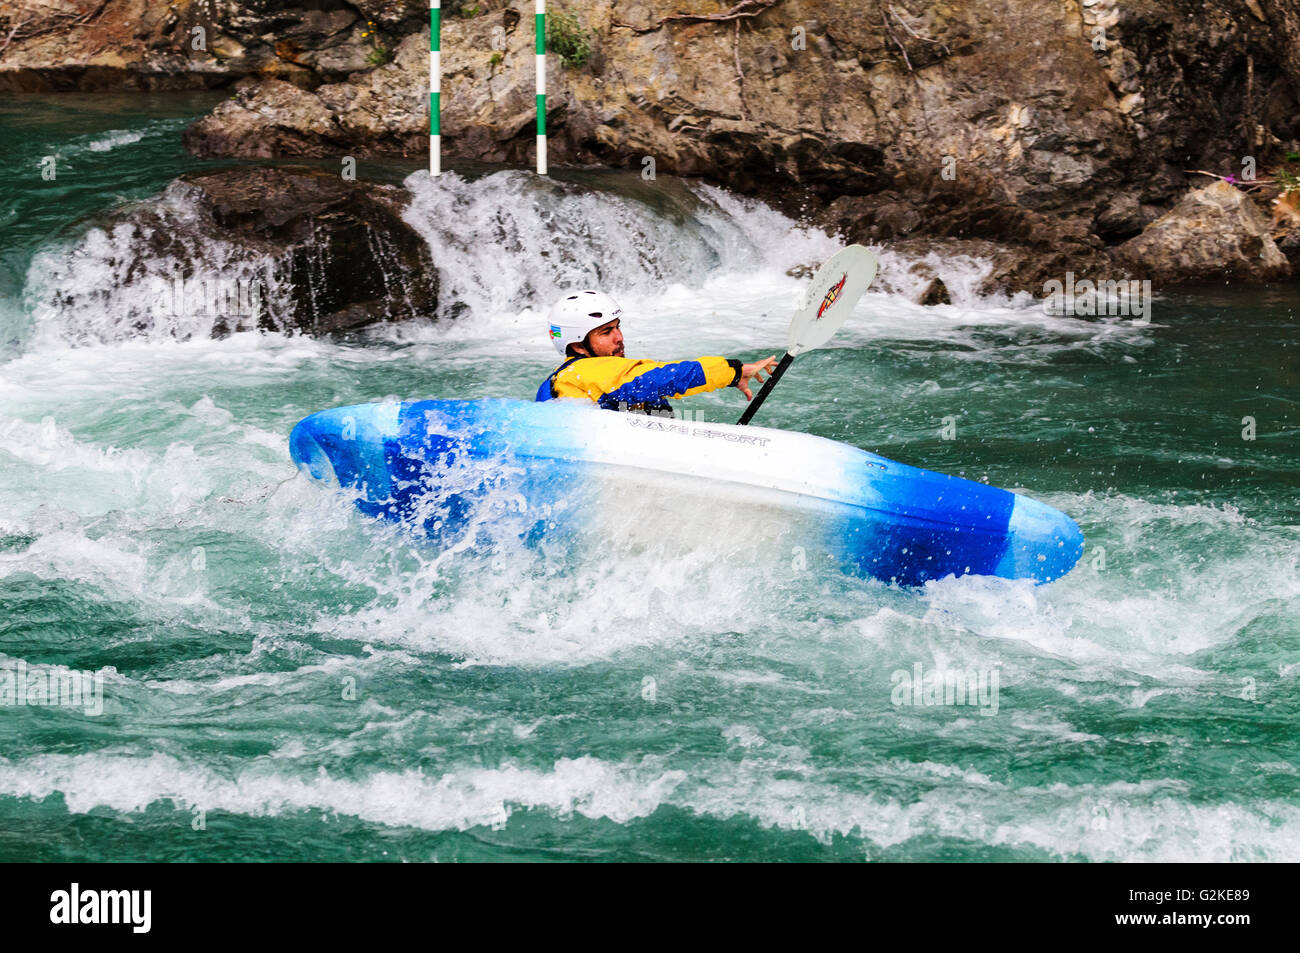 A slalom kayaker tries to stabilize his kayak while navigating the Kananaskis River at the Canoe Meadows course - Stock Image